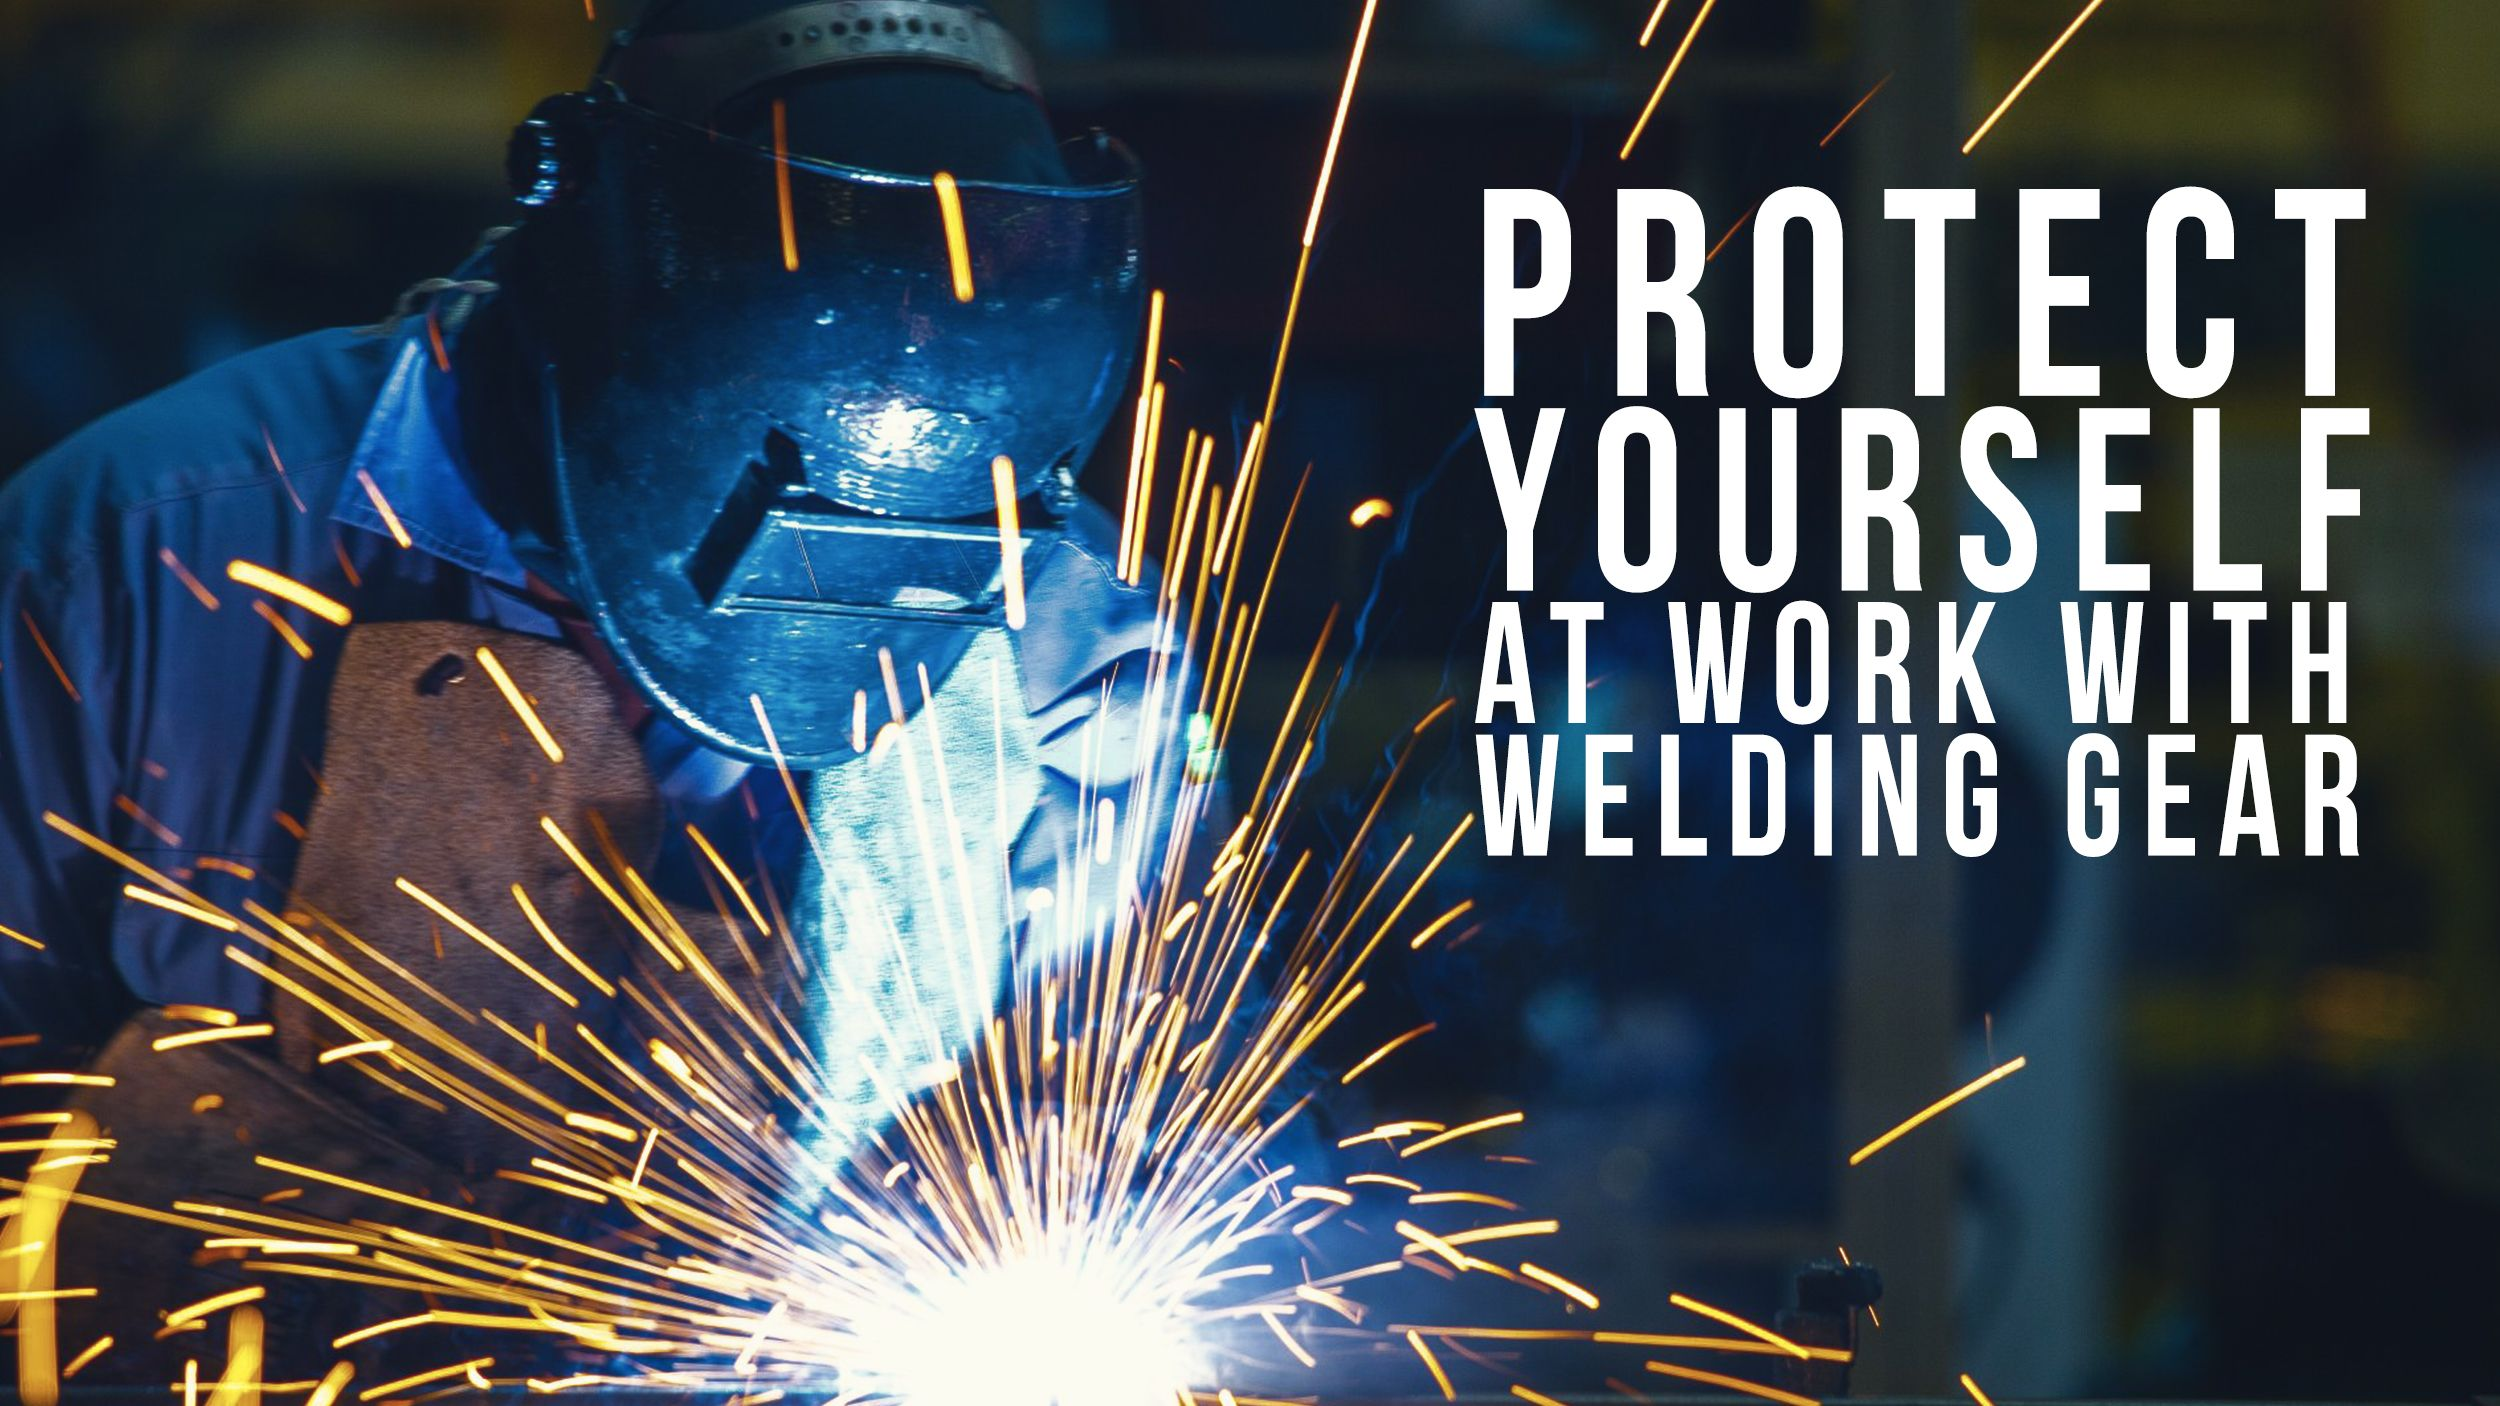 Protect Yourself at Work With Welding Gear Header